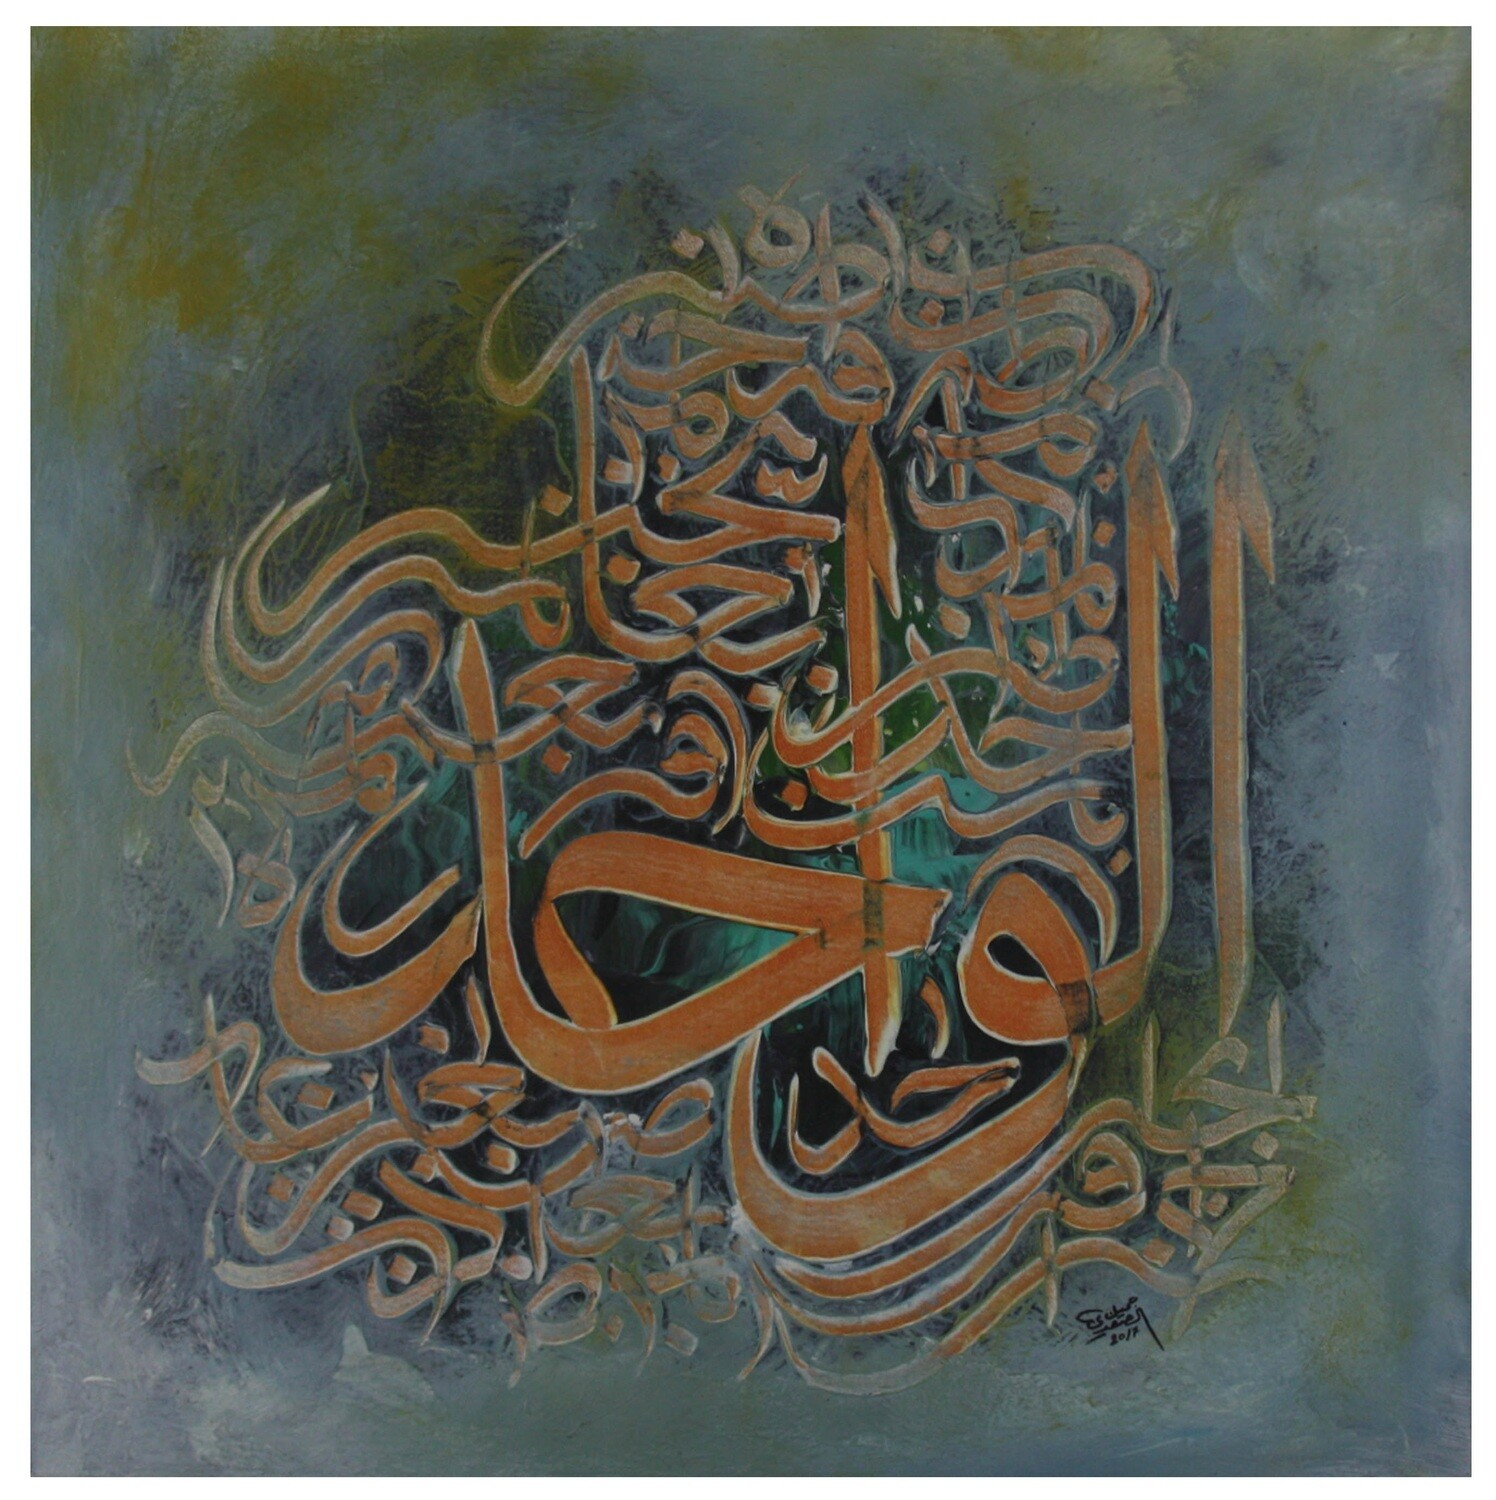 Al Wahid -The One Textured Multi-Media Original Hand painted Canvas